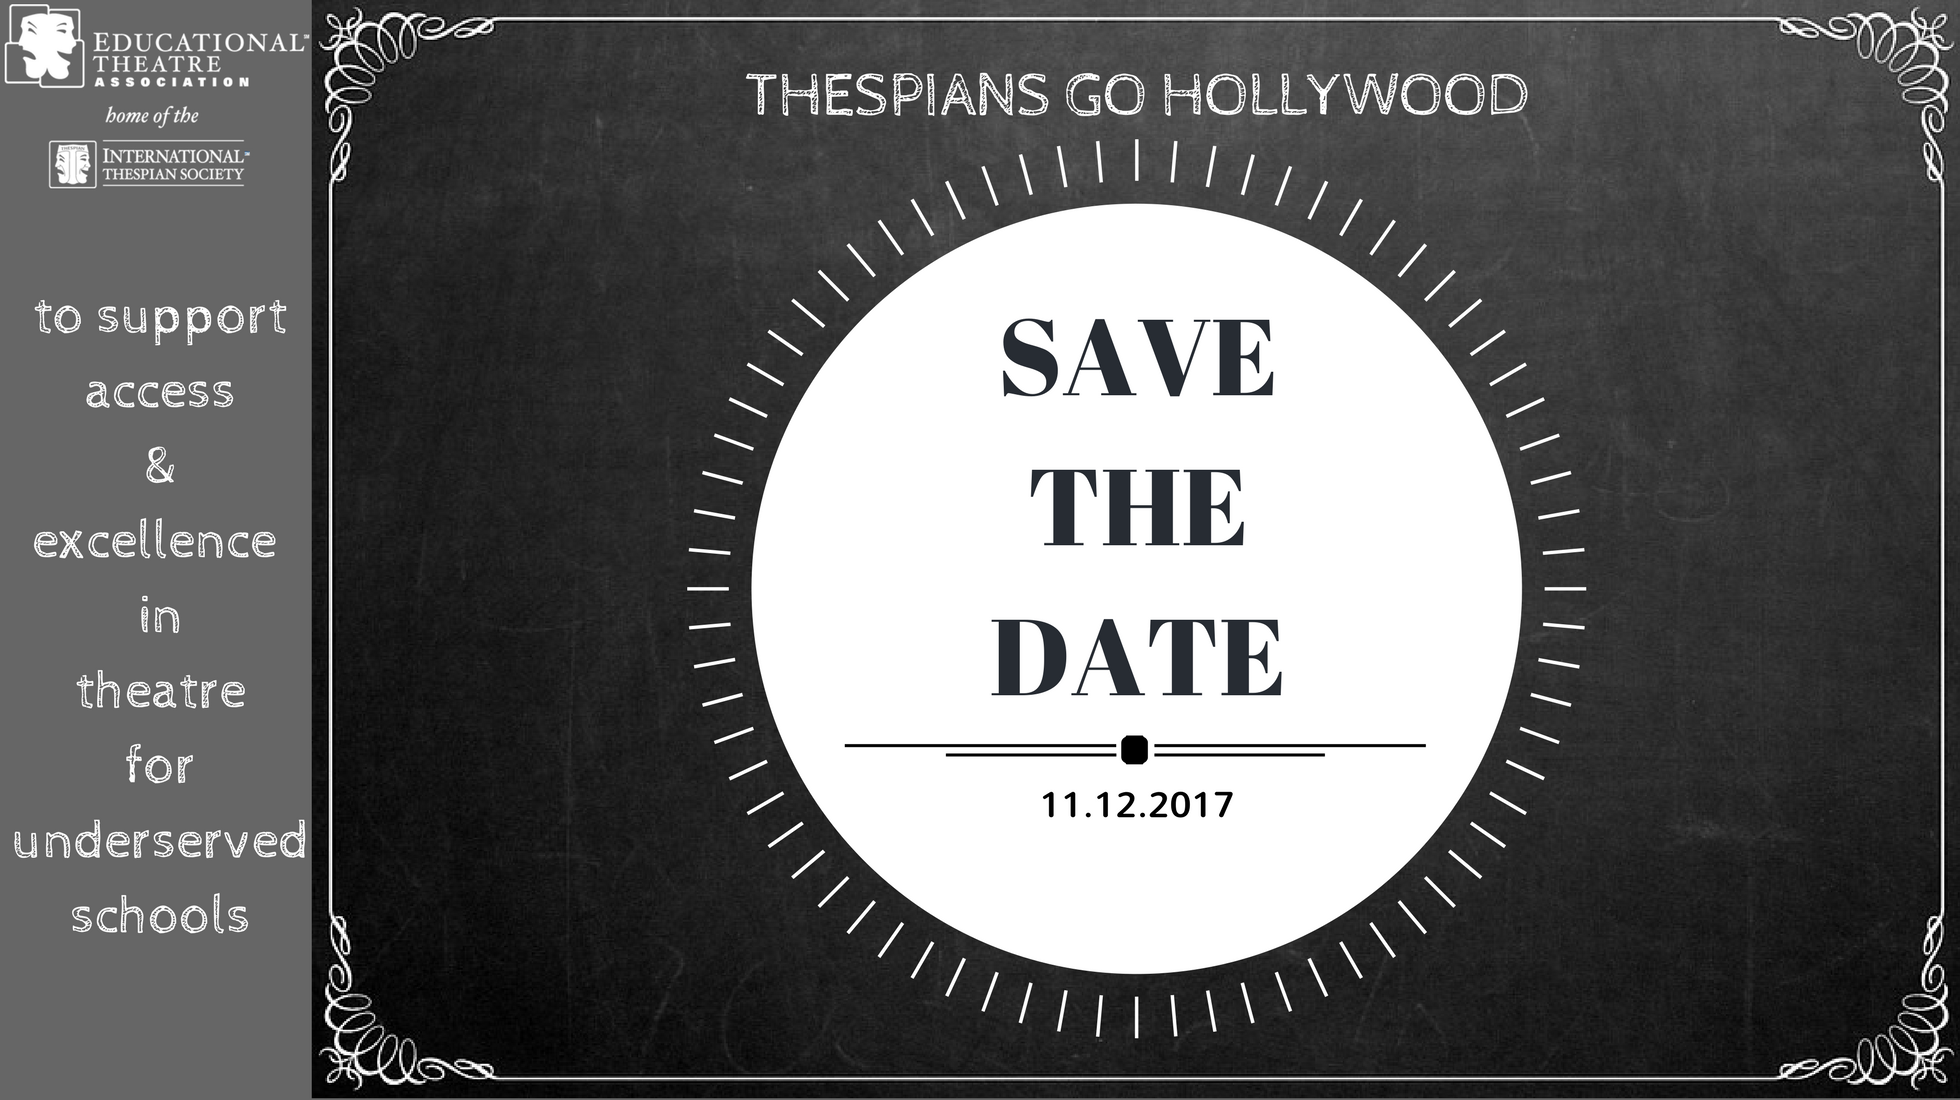 Thespians Go Hollywood 2017